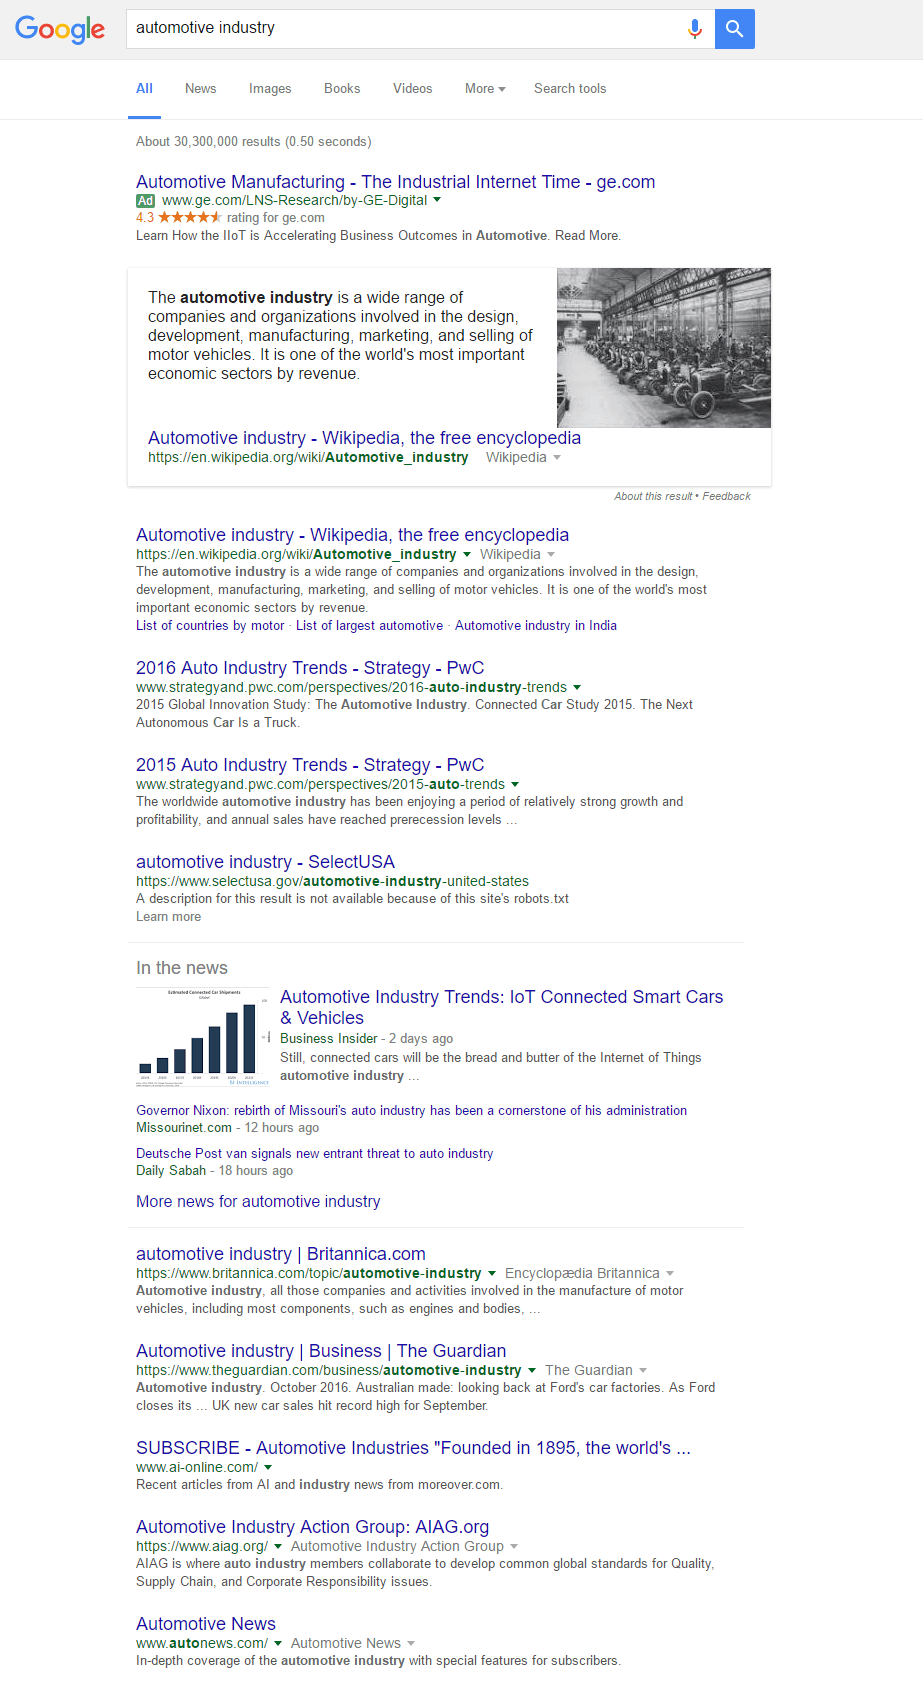 automotive industry SERP